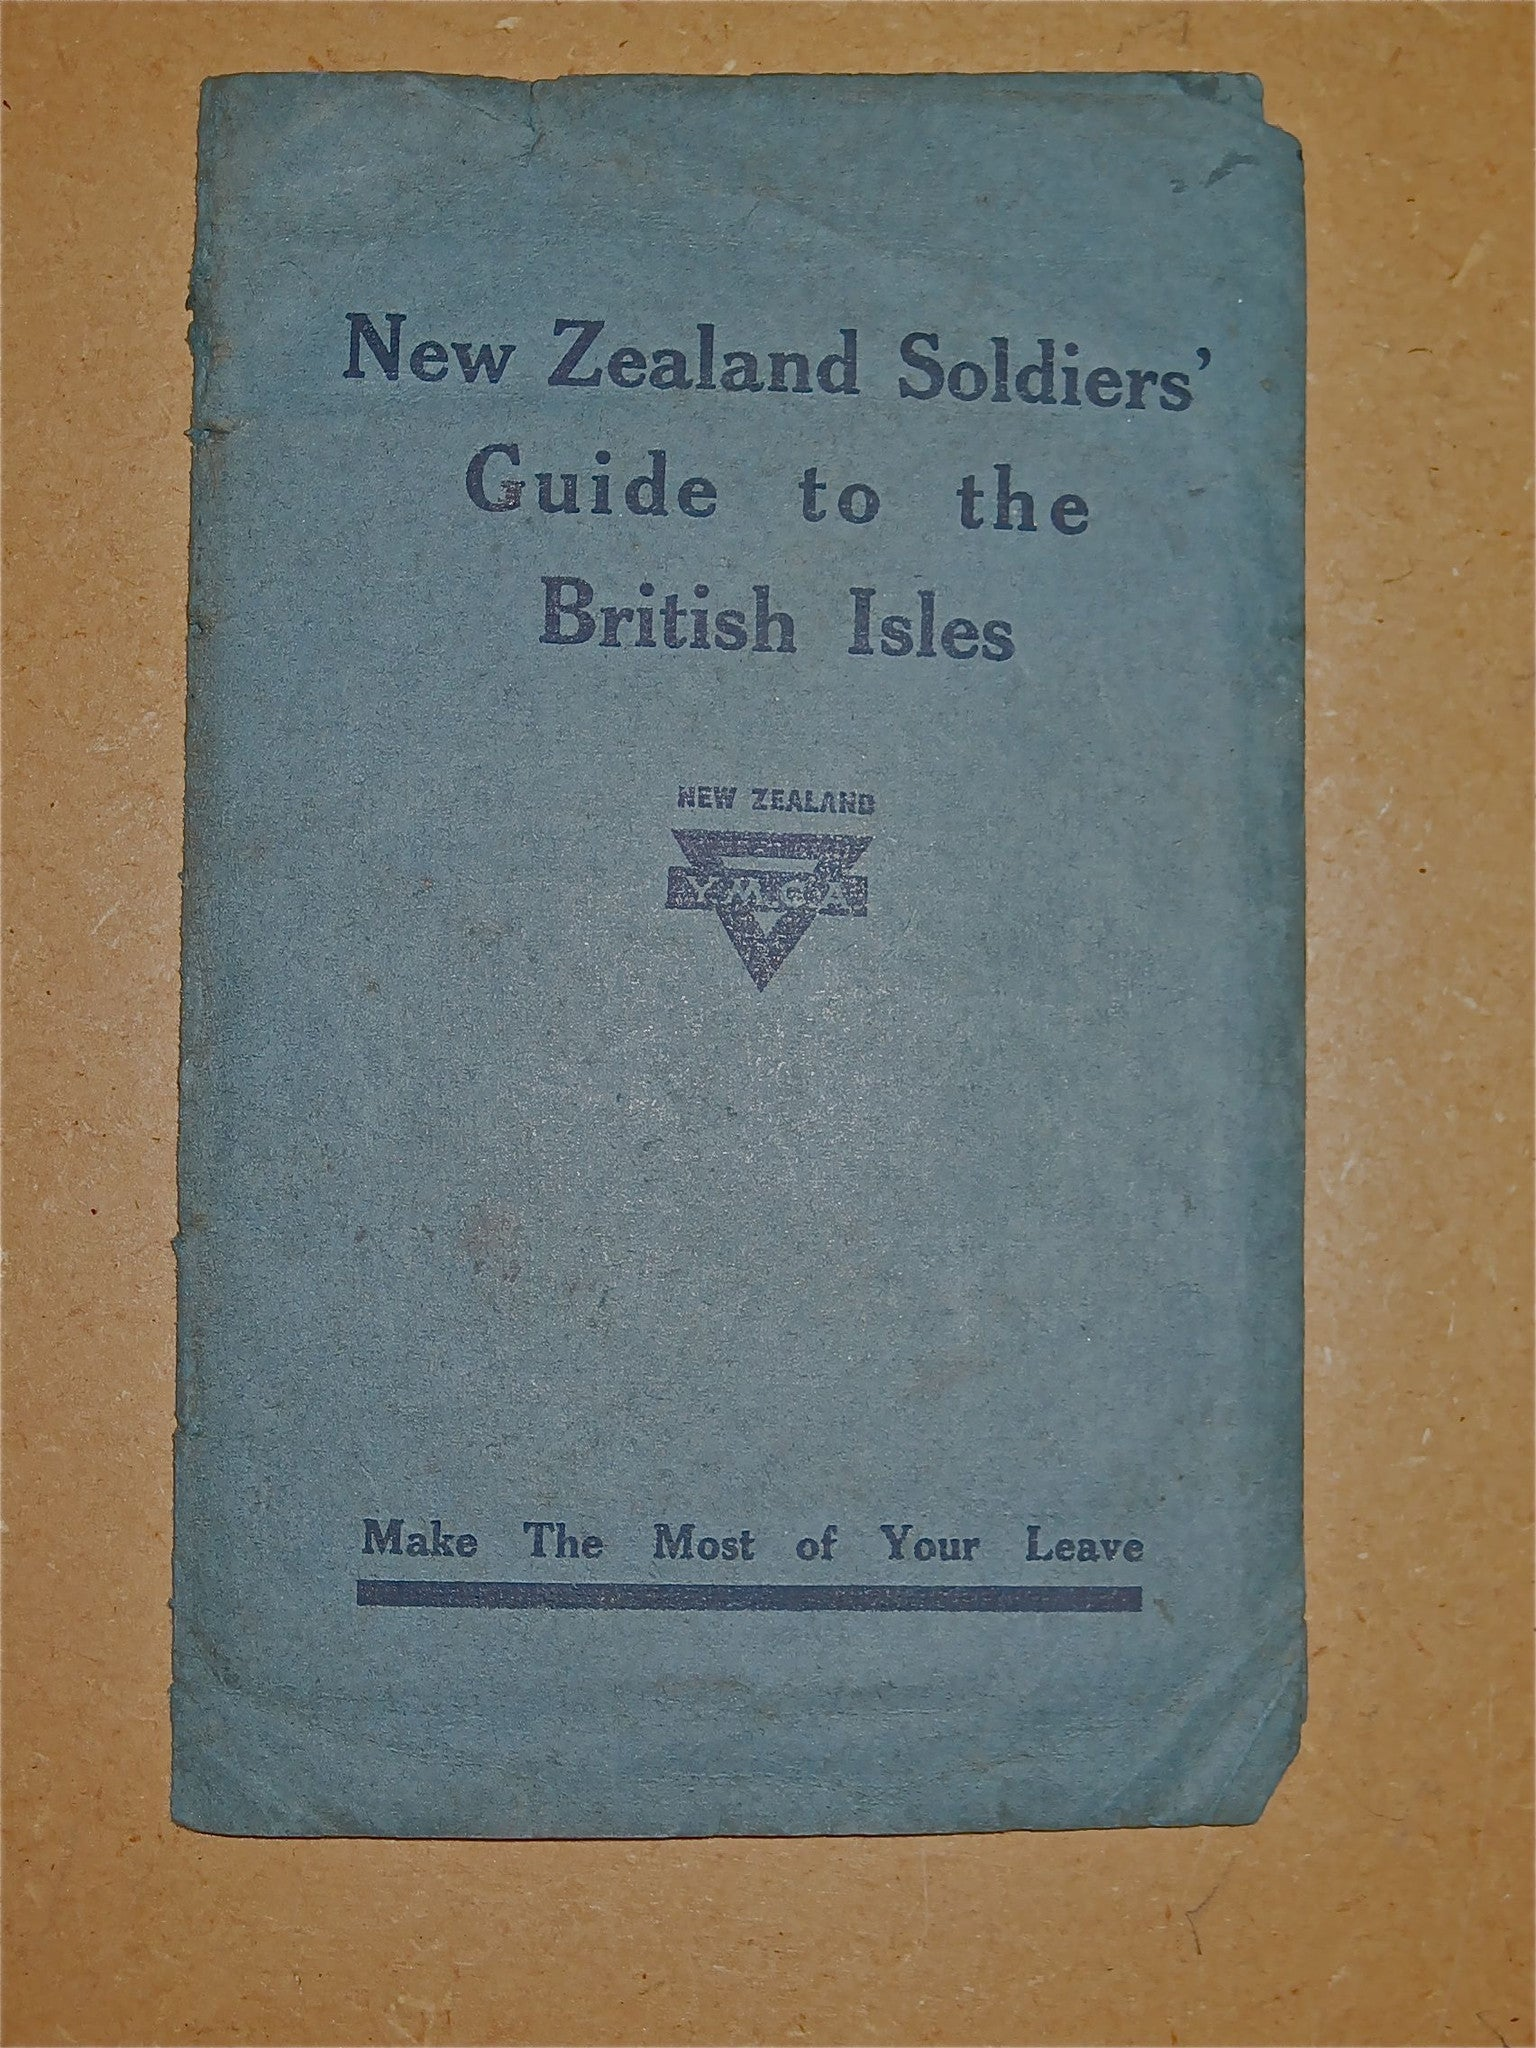 New Zealand Soldiers' Guide to the British Isles